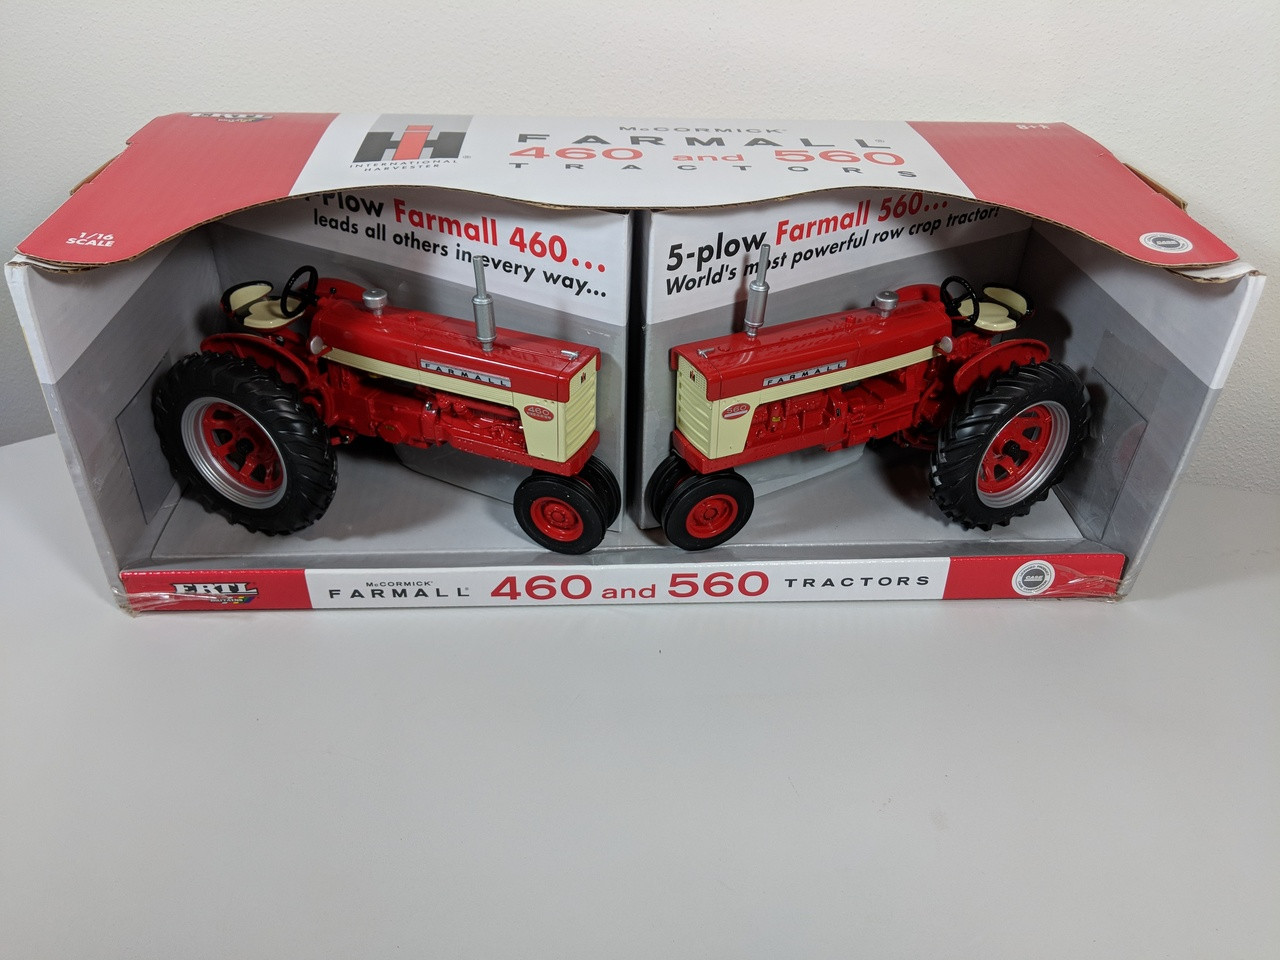 hight resolution of 1 16 farmall 460 and 560 2 piece tractor set collector edition set also 806 farmall tractor wiring harness in addition 560 farmall